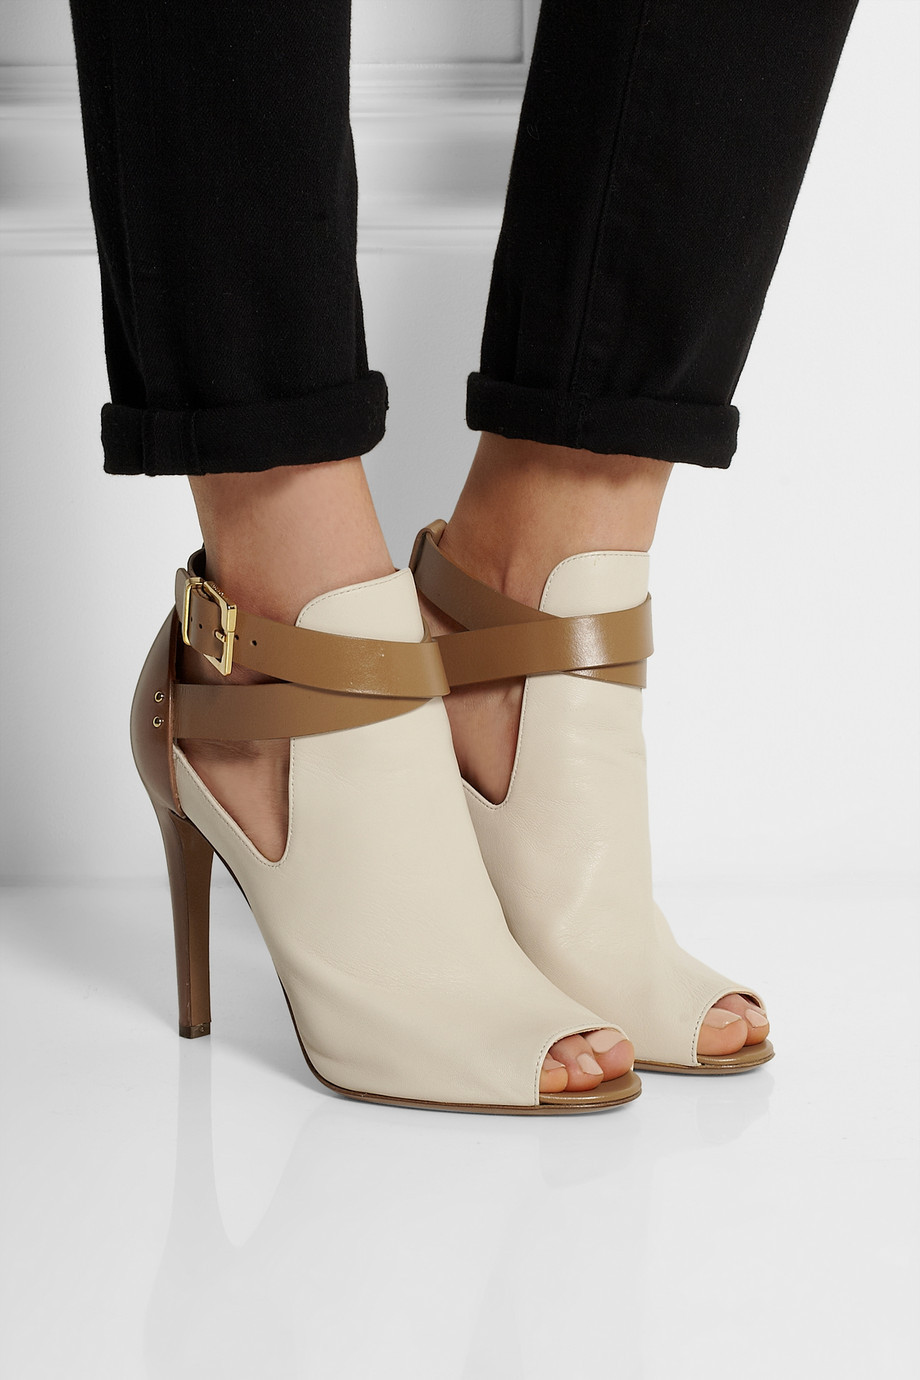 Cheap Stylish Heels